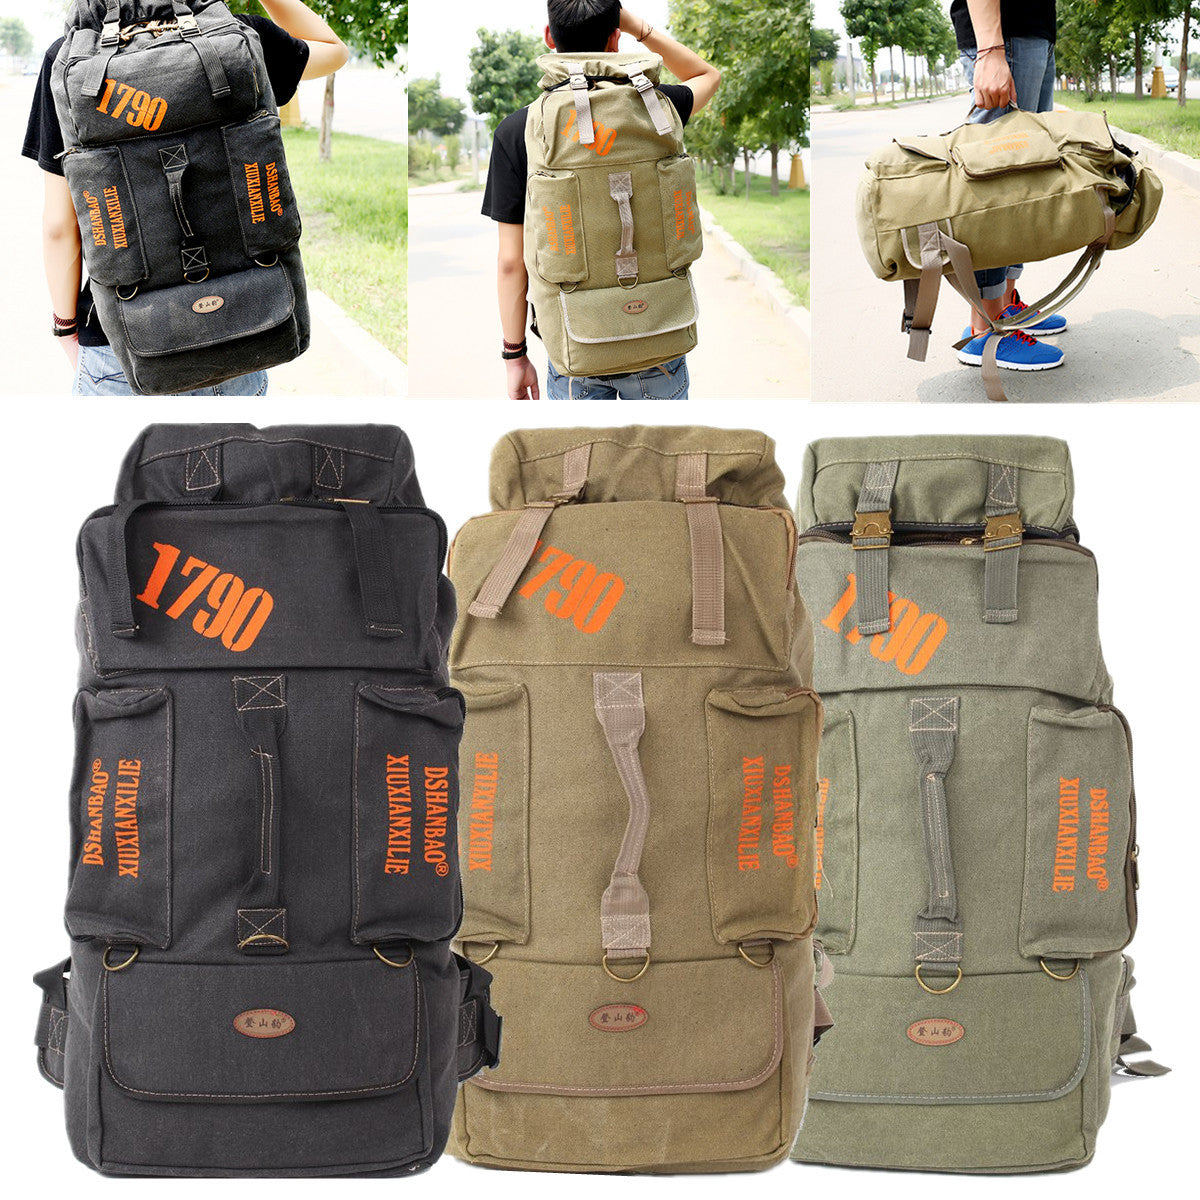 80L Camping-Hiking Canvas Travel Rucksack